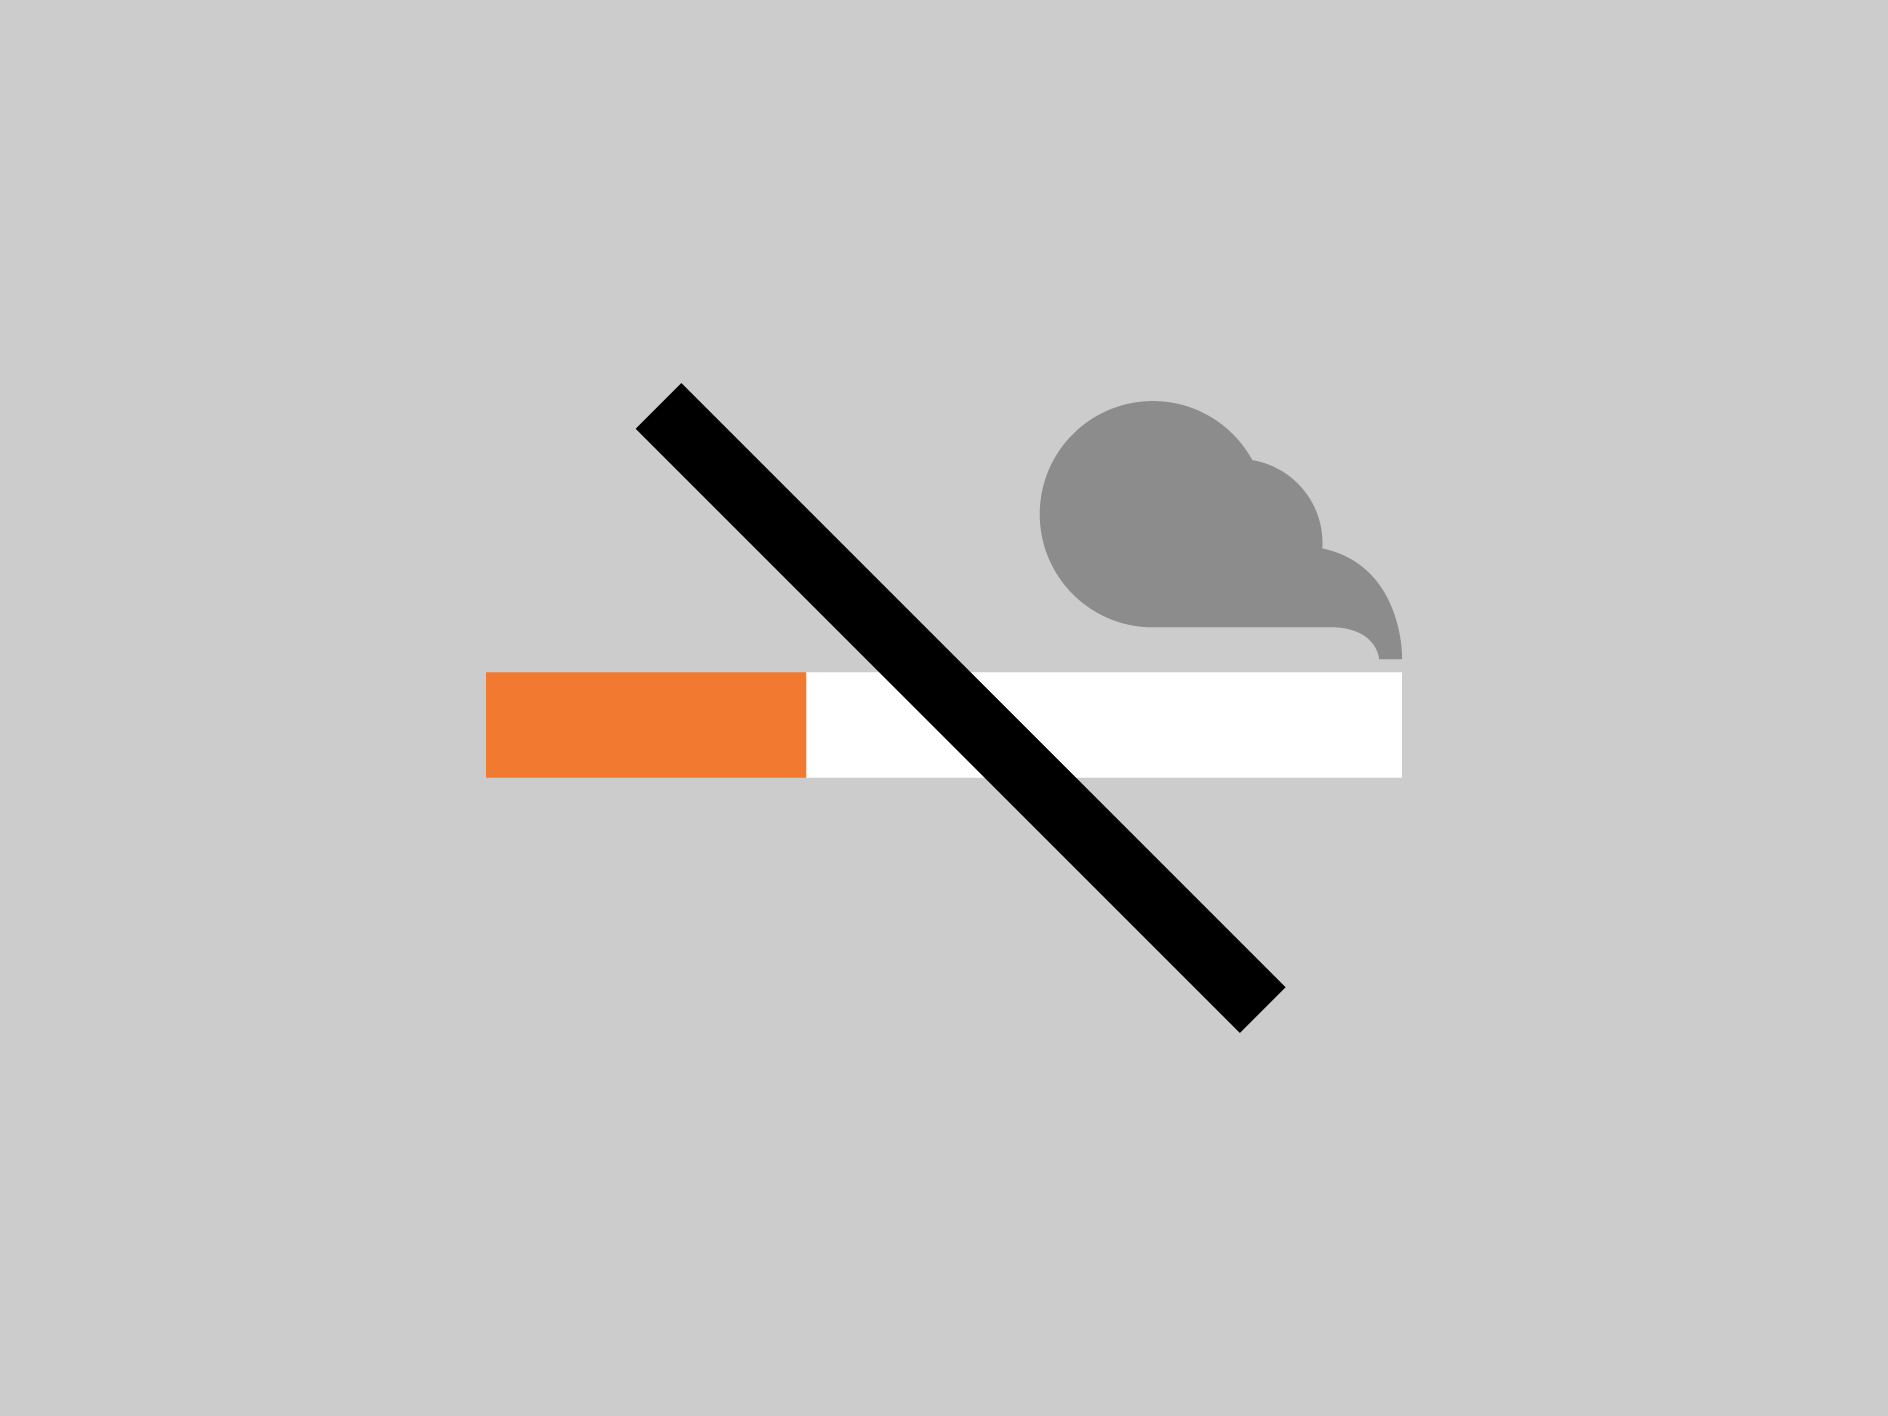 A pictogram representing tobacco-free.